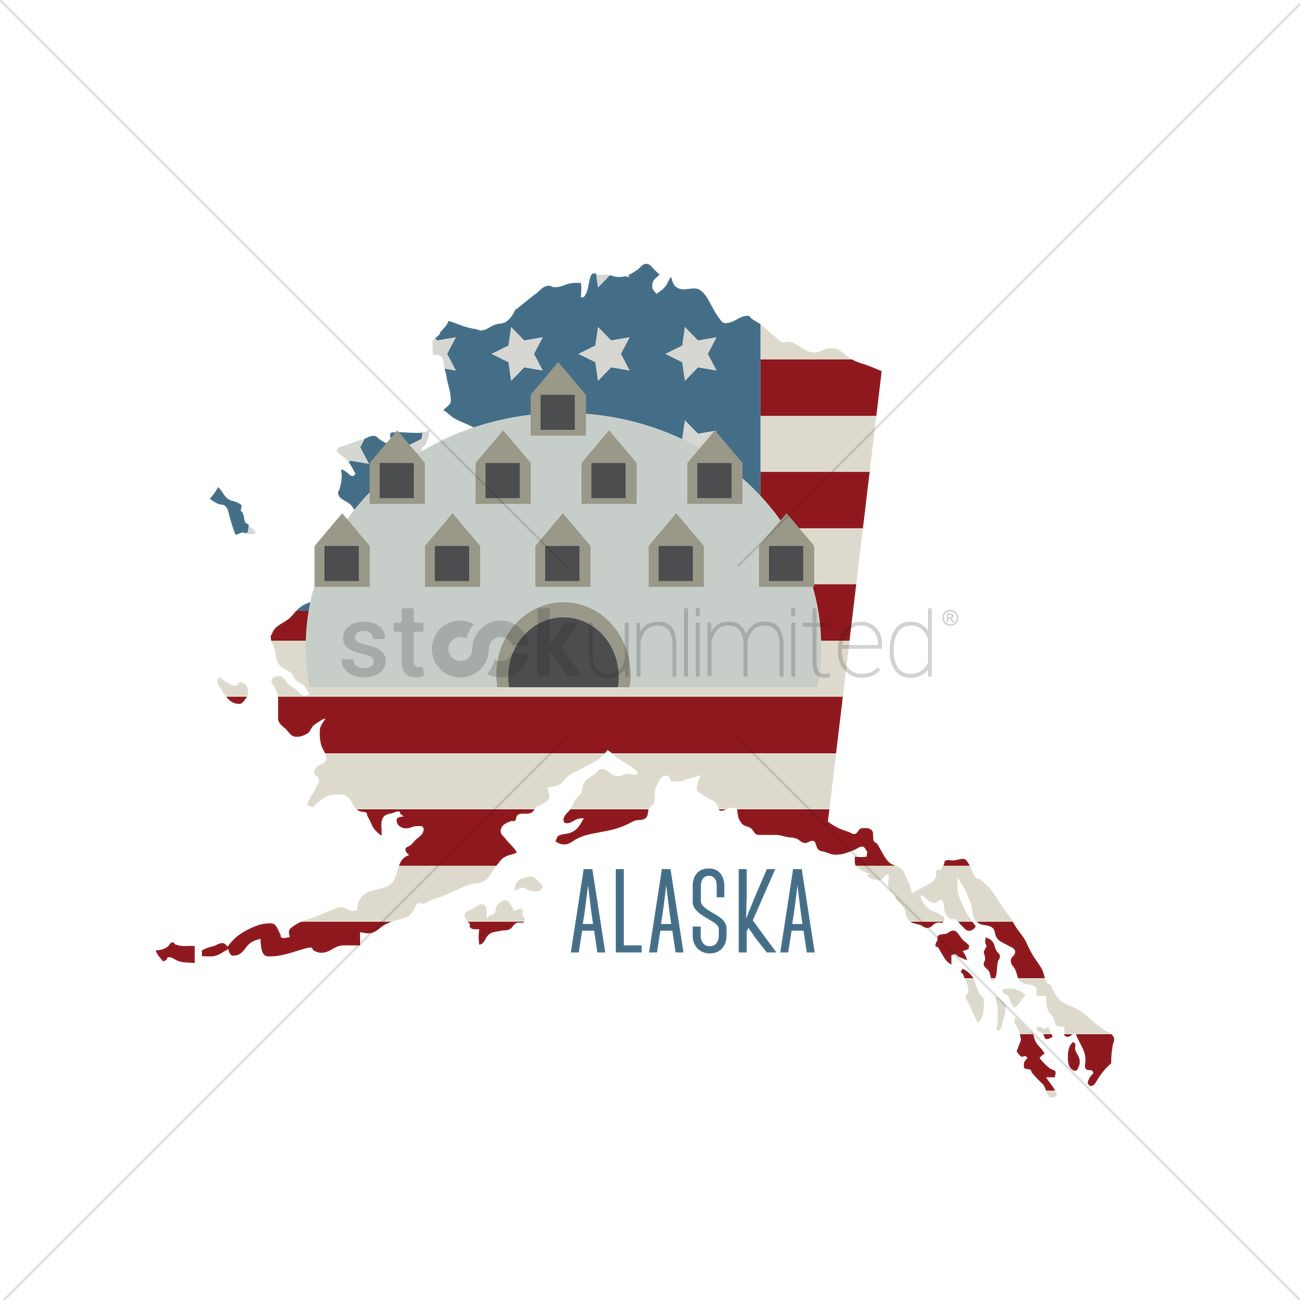 Alaska State Map Abandoned Igloo City Hotel Vector Graphic